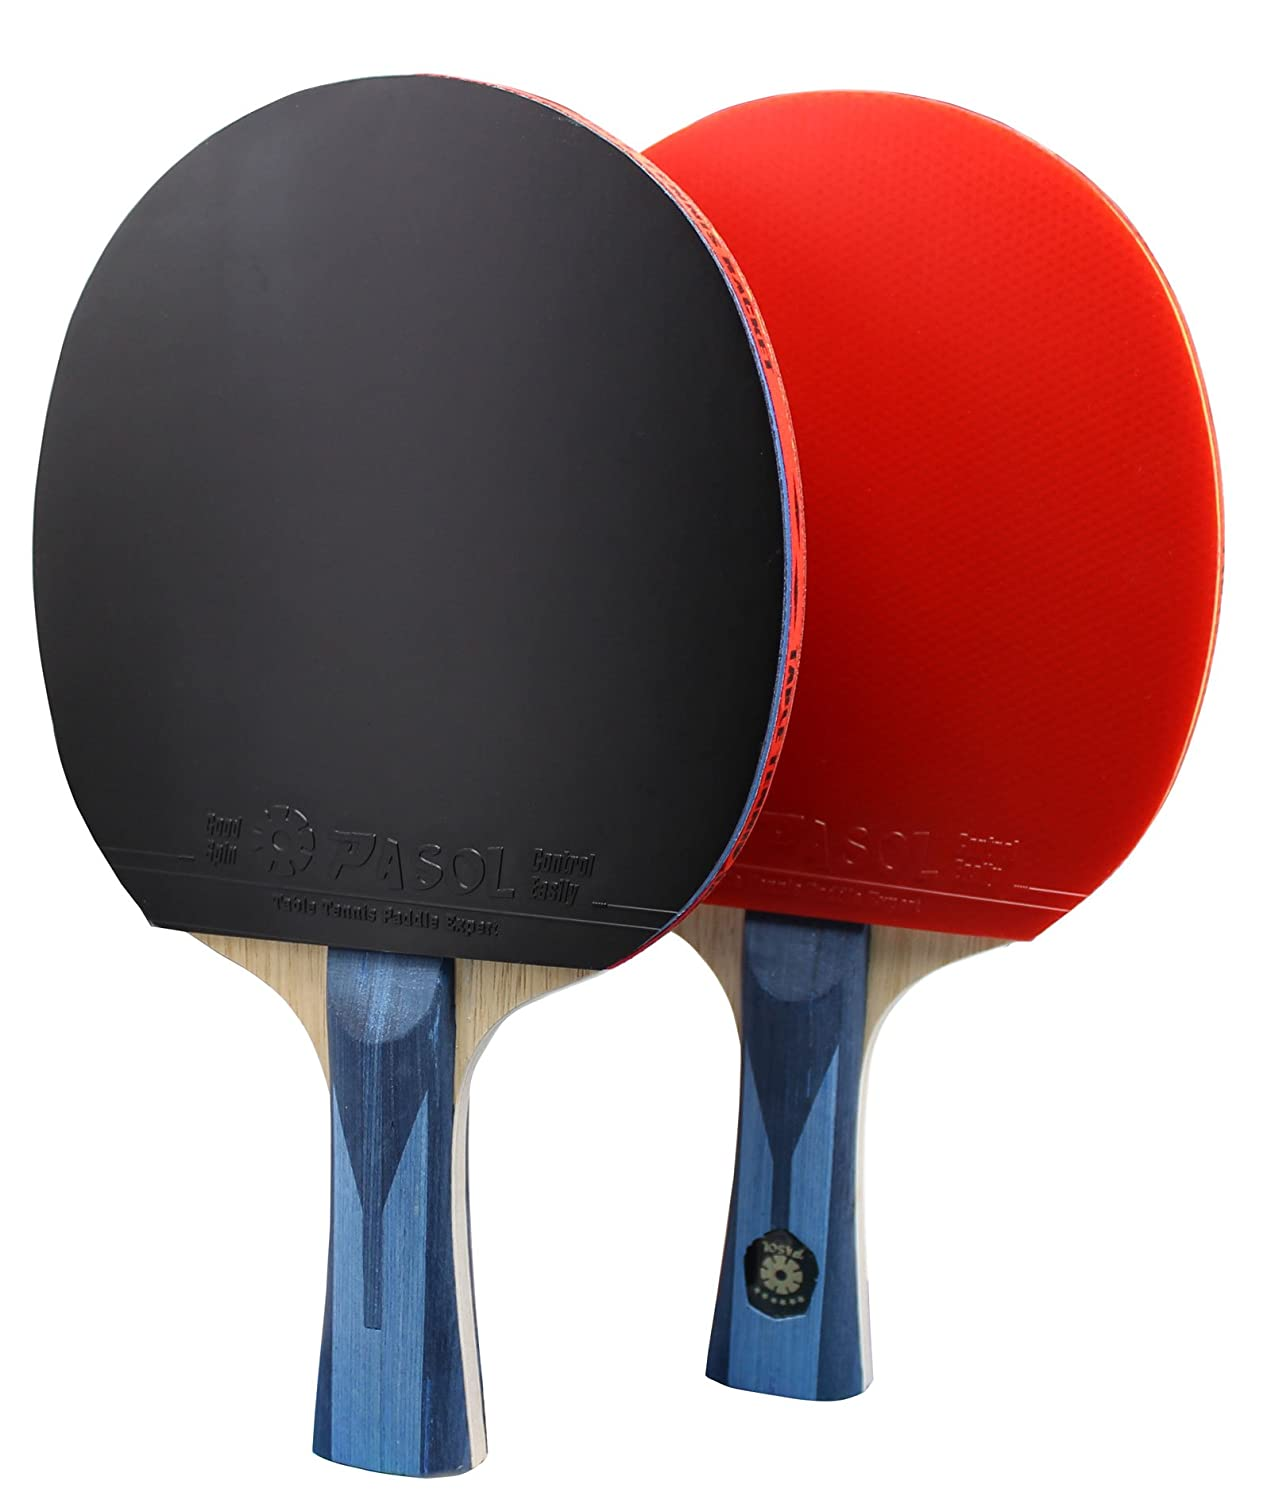 PASOL 6 Star Competitive Table Tennis Racket Ping Paddle Bat- Great Bag Professional 2-Player Tournament Ping Pong Racket with Carry Bag B06XQWH59W, ミナミカワチマチ:4c3804f0 --- gamenavi.club